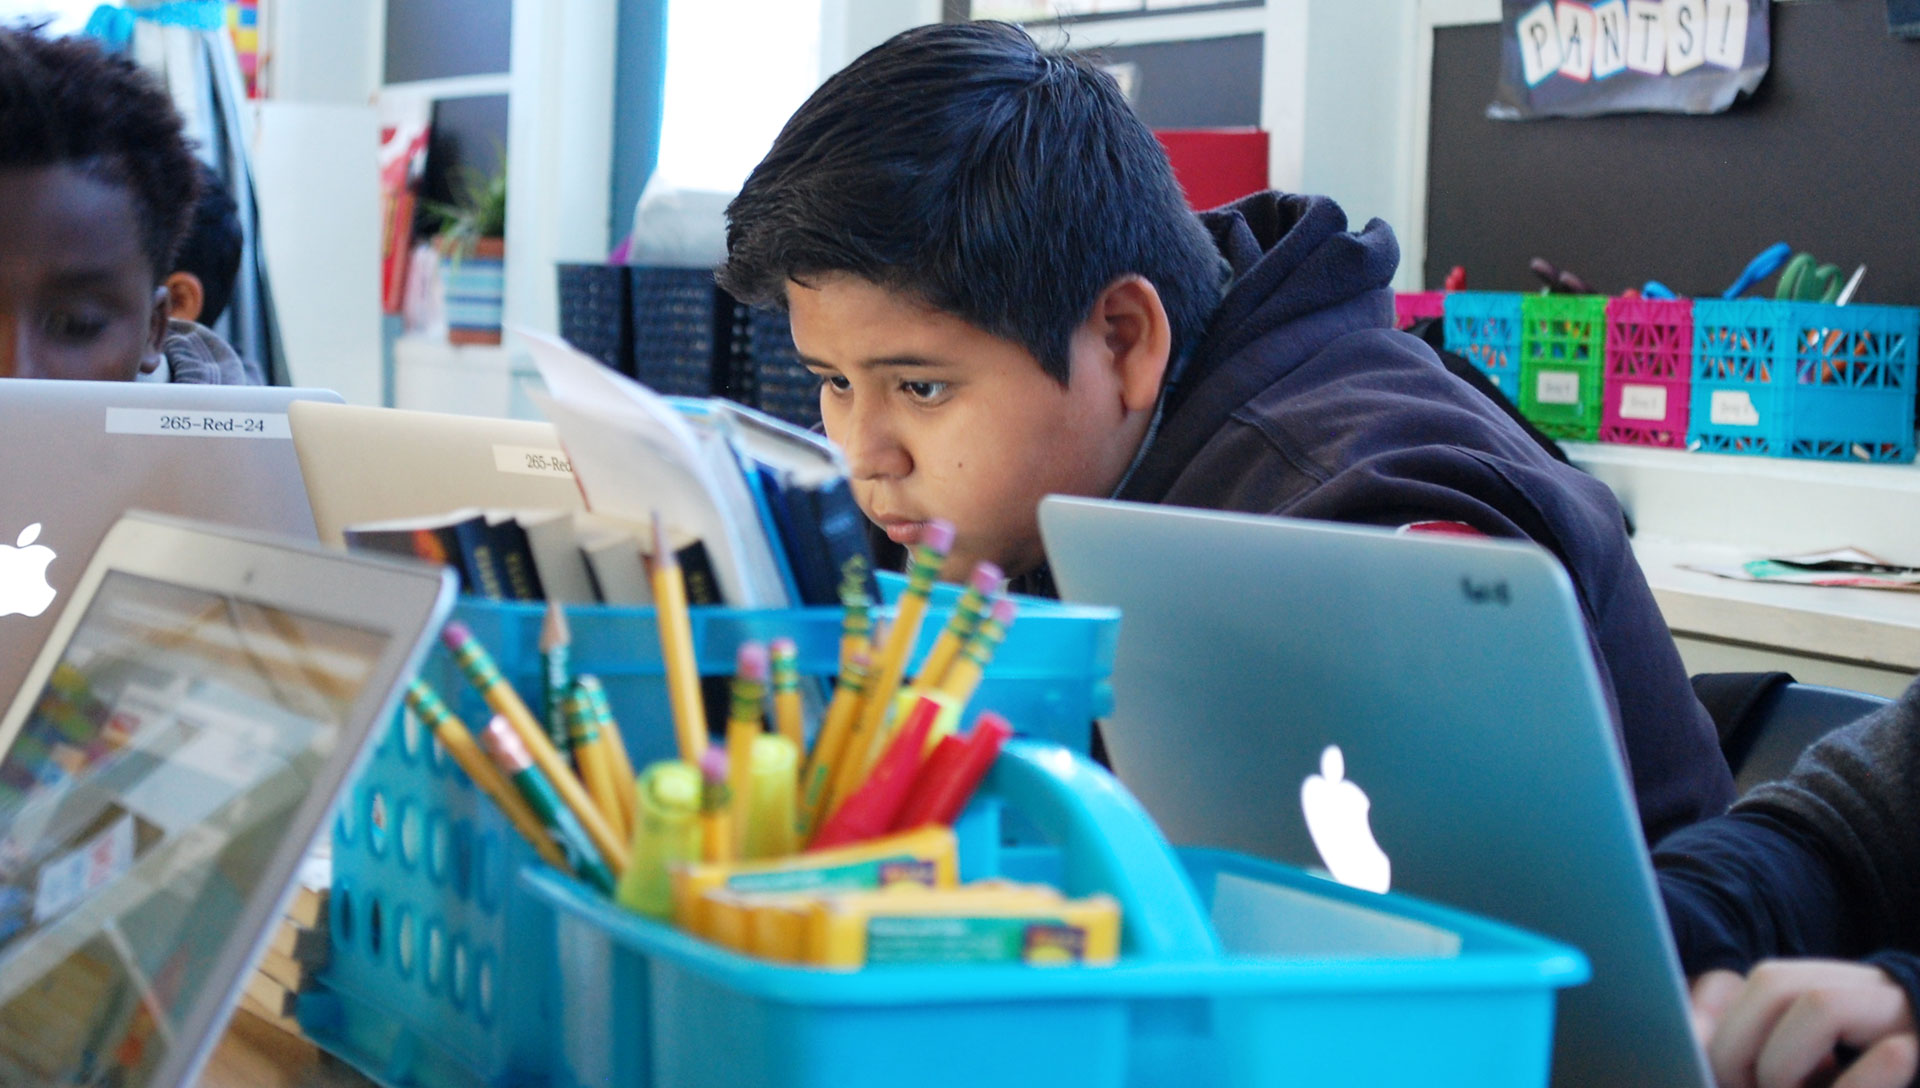 Eleven-year-old Carlos Delrio focuses on completing a computer assignment in his sixth grade class at Oak Ridge Elementary School in Sacramento.